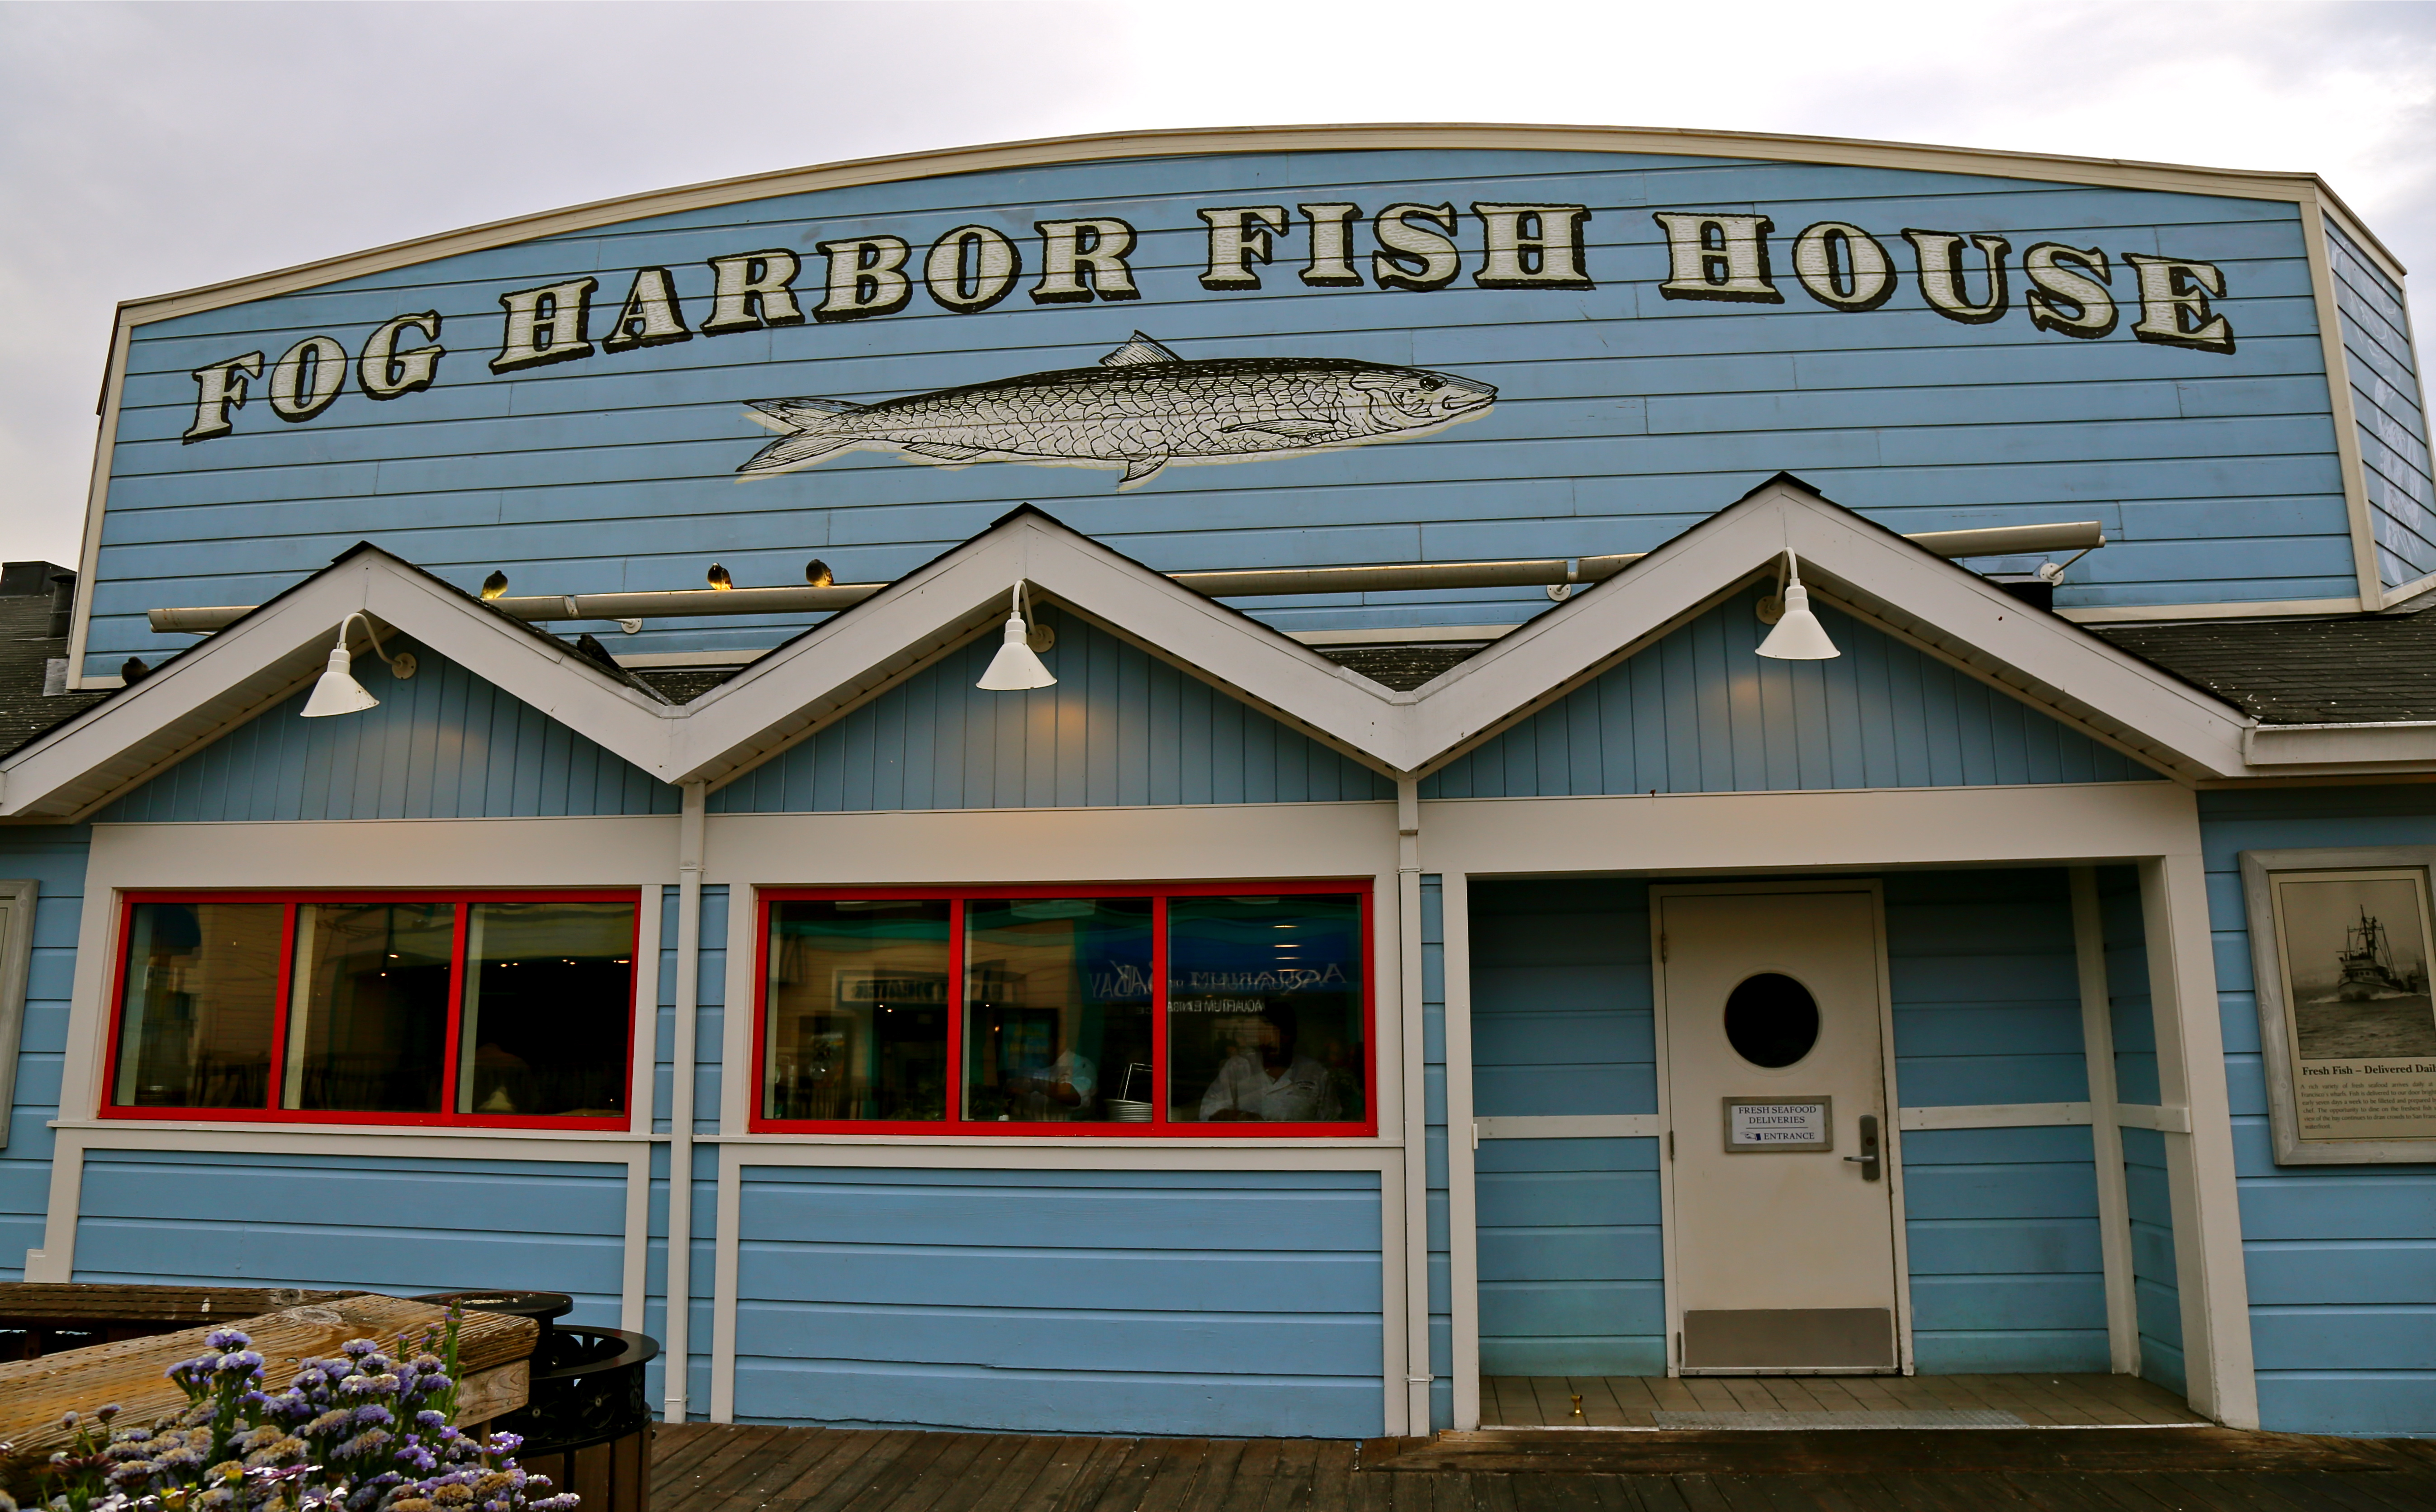 The fog harbor fish house lost in the usa for Aaa fish house